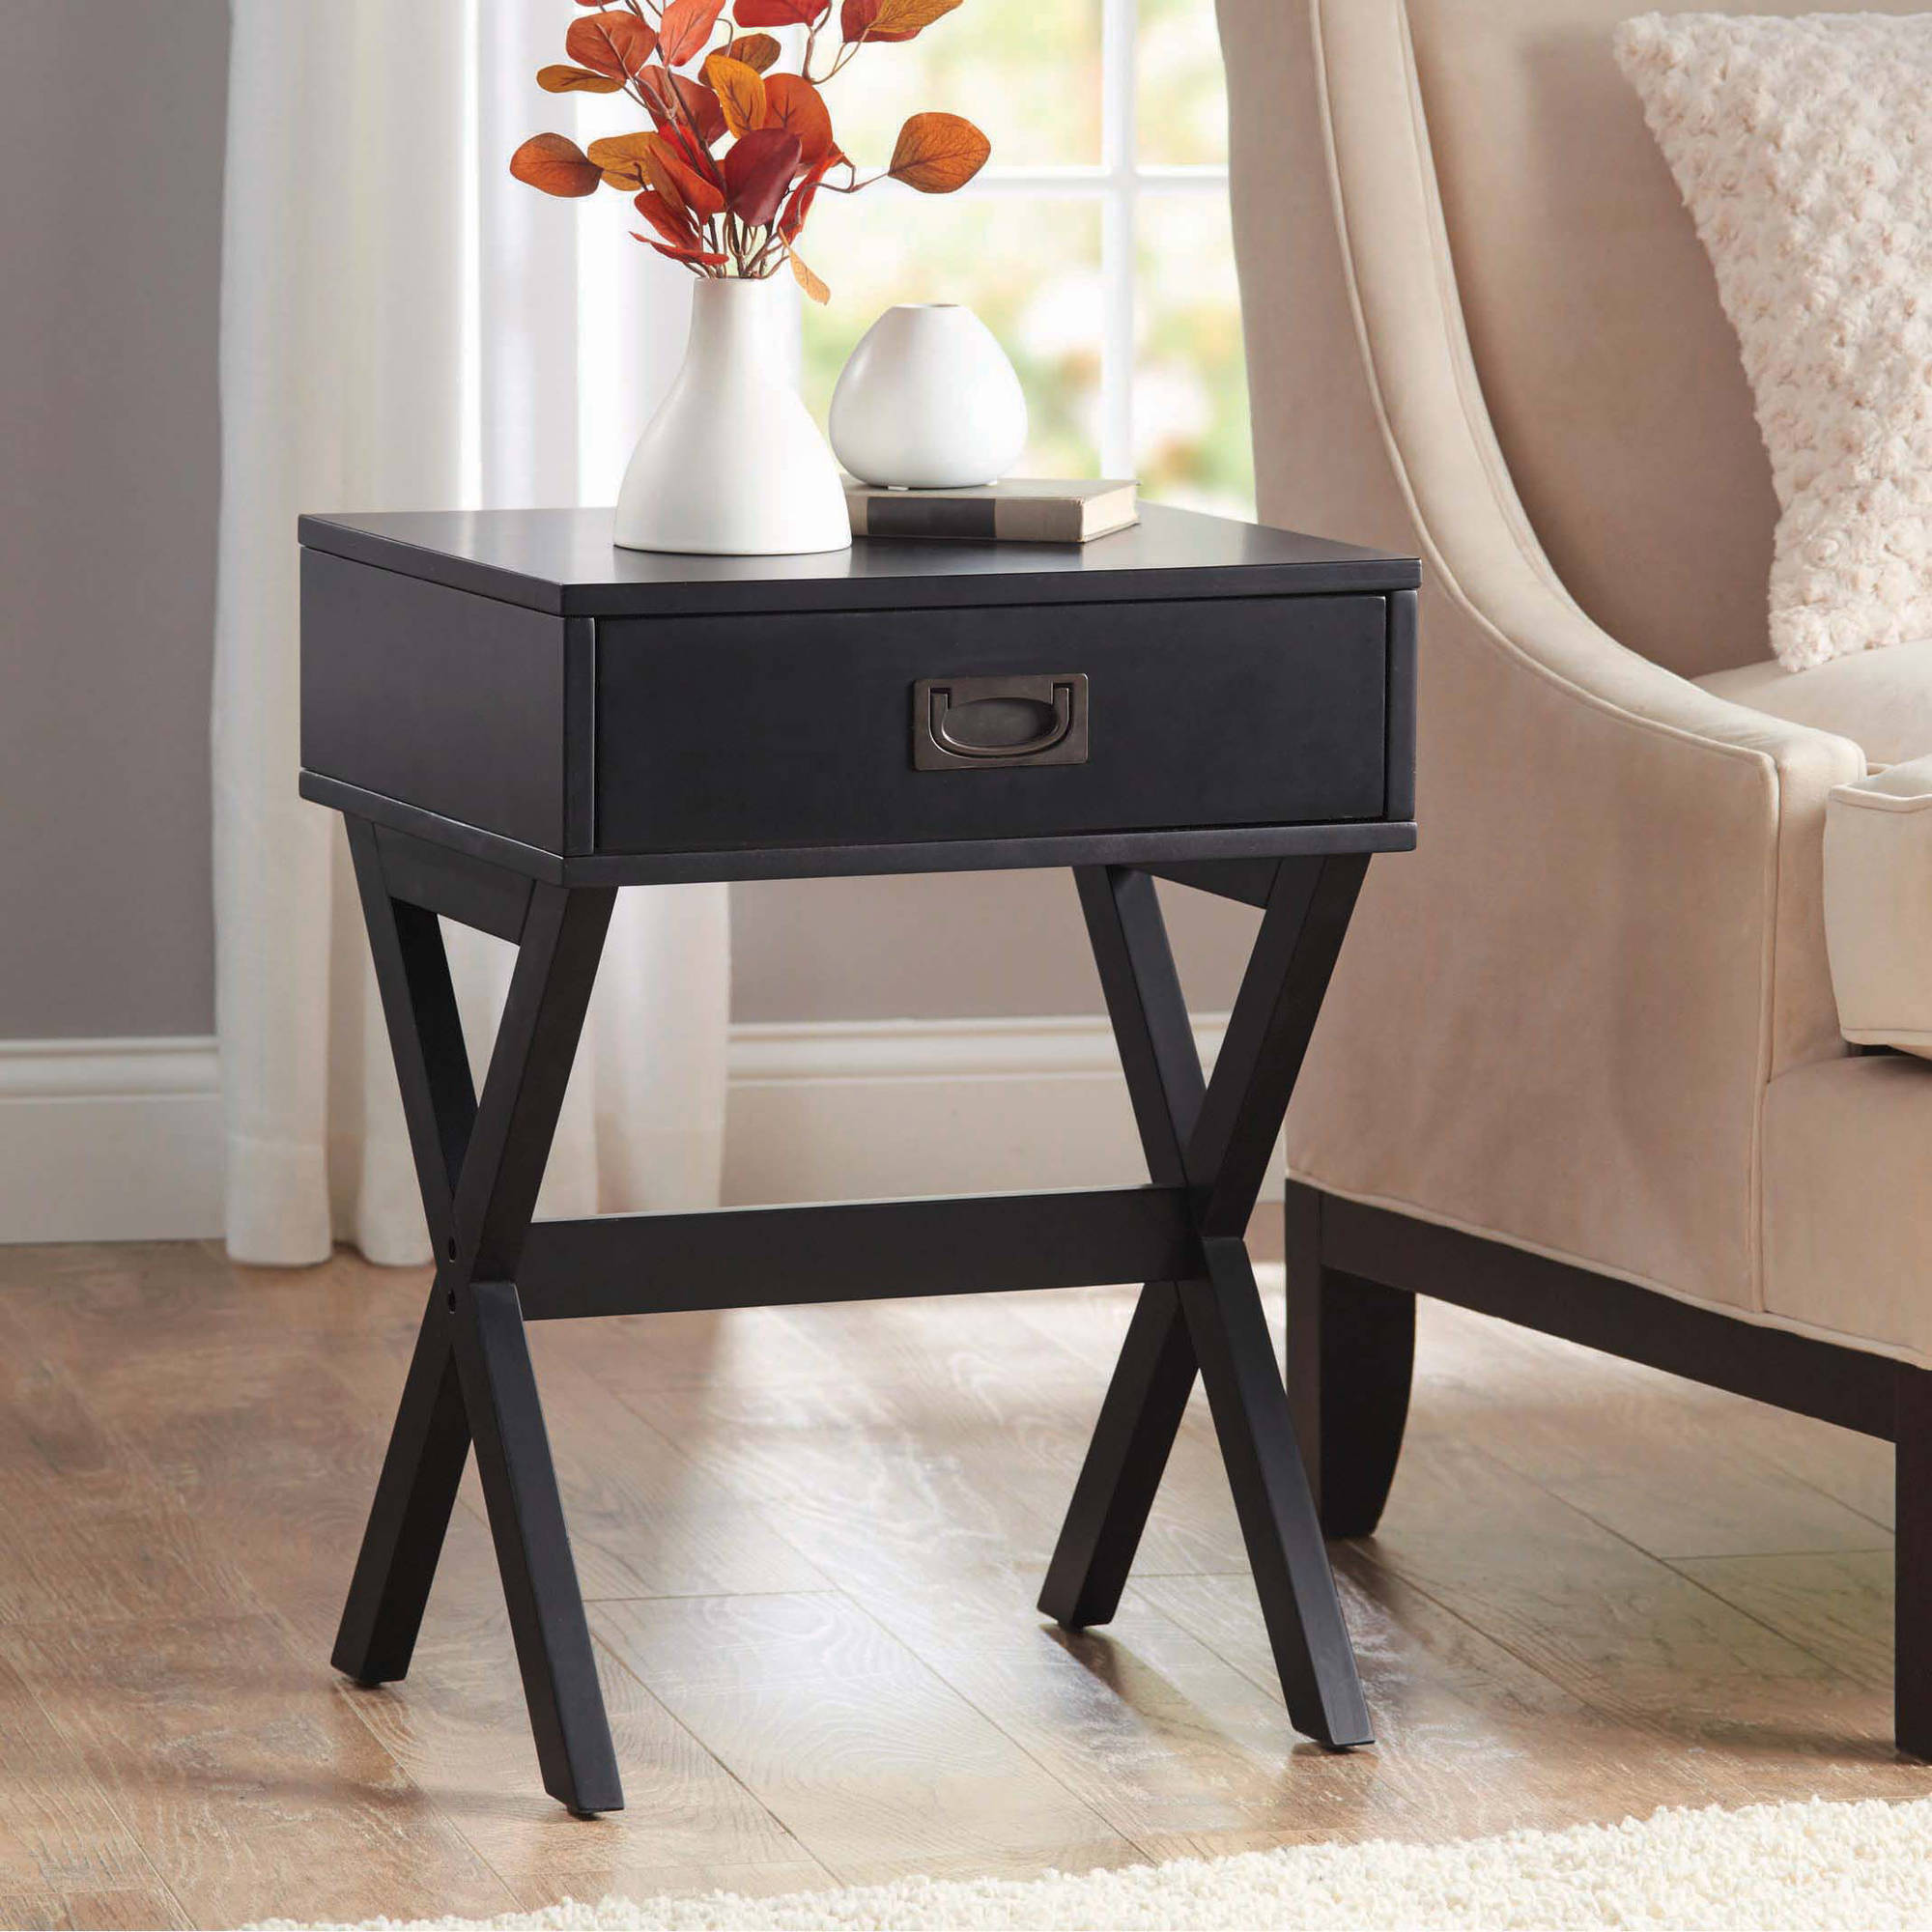 black accent table with drawer home design ideas timmy night better homes gardens leg multiple next lamps bdi furniture monarch bentwood tempered glass rustic living room sets